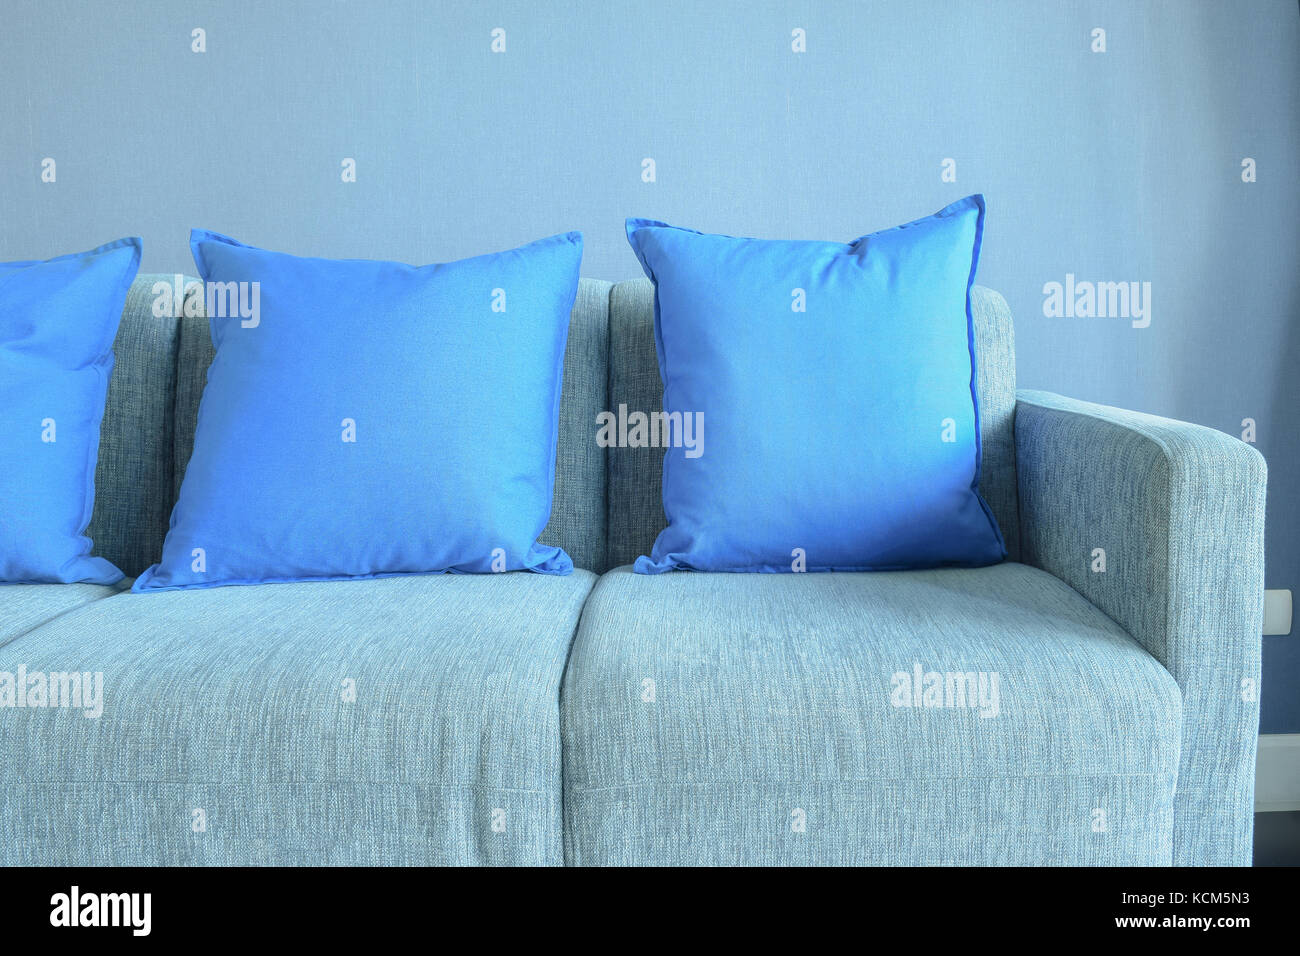 Fabulous Blue Color Pillows Setting On Light Blue Sofa With Blue Wall Uwap Interior Chair Design Uwaporg